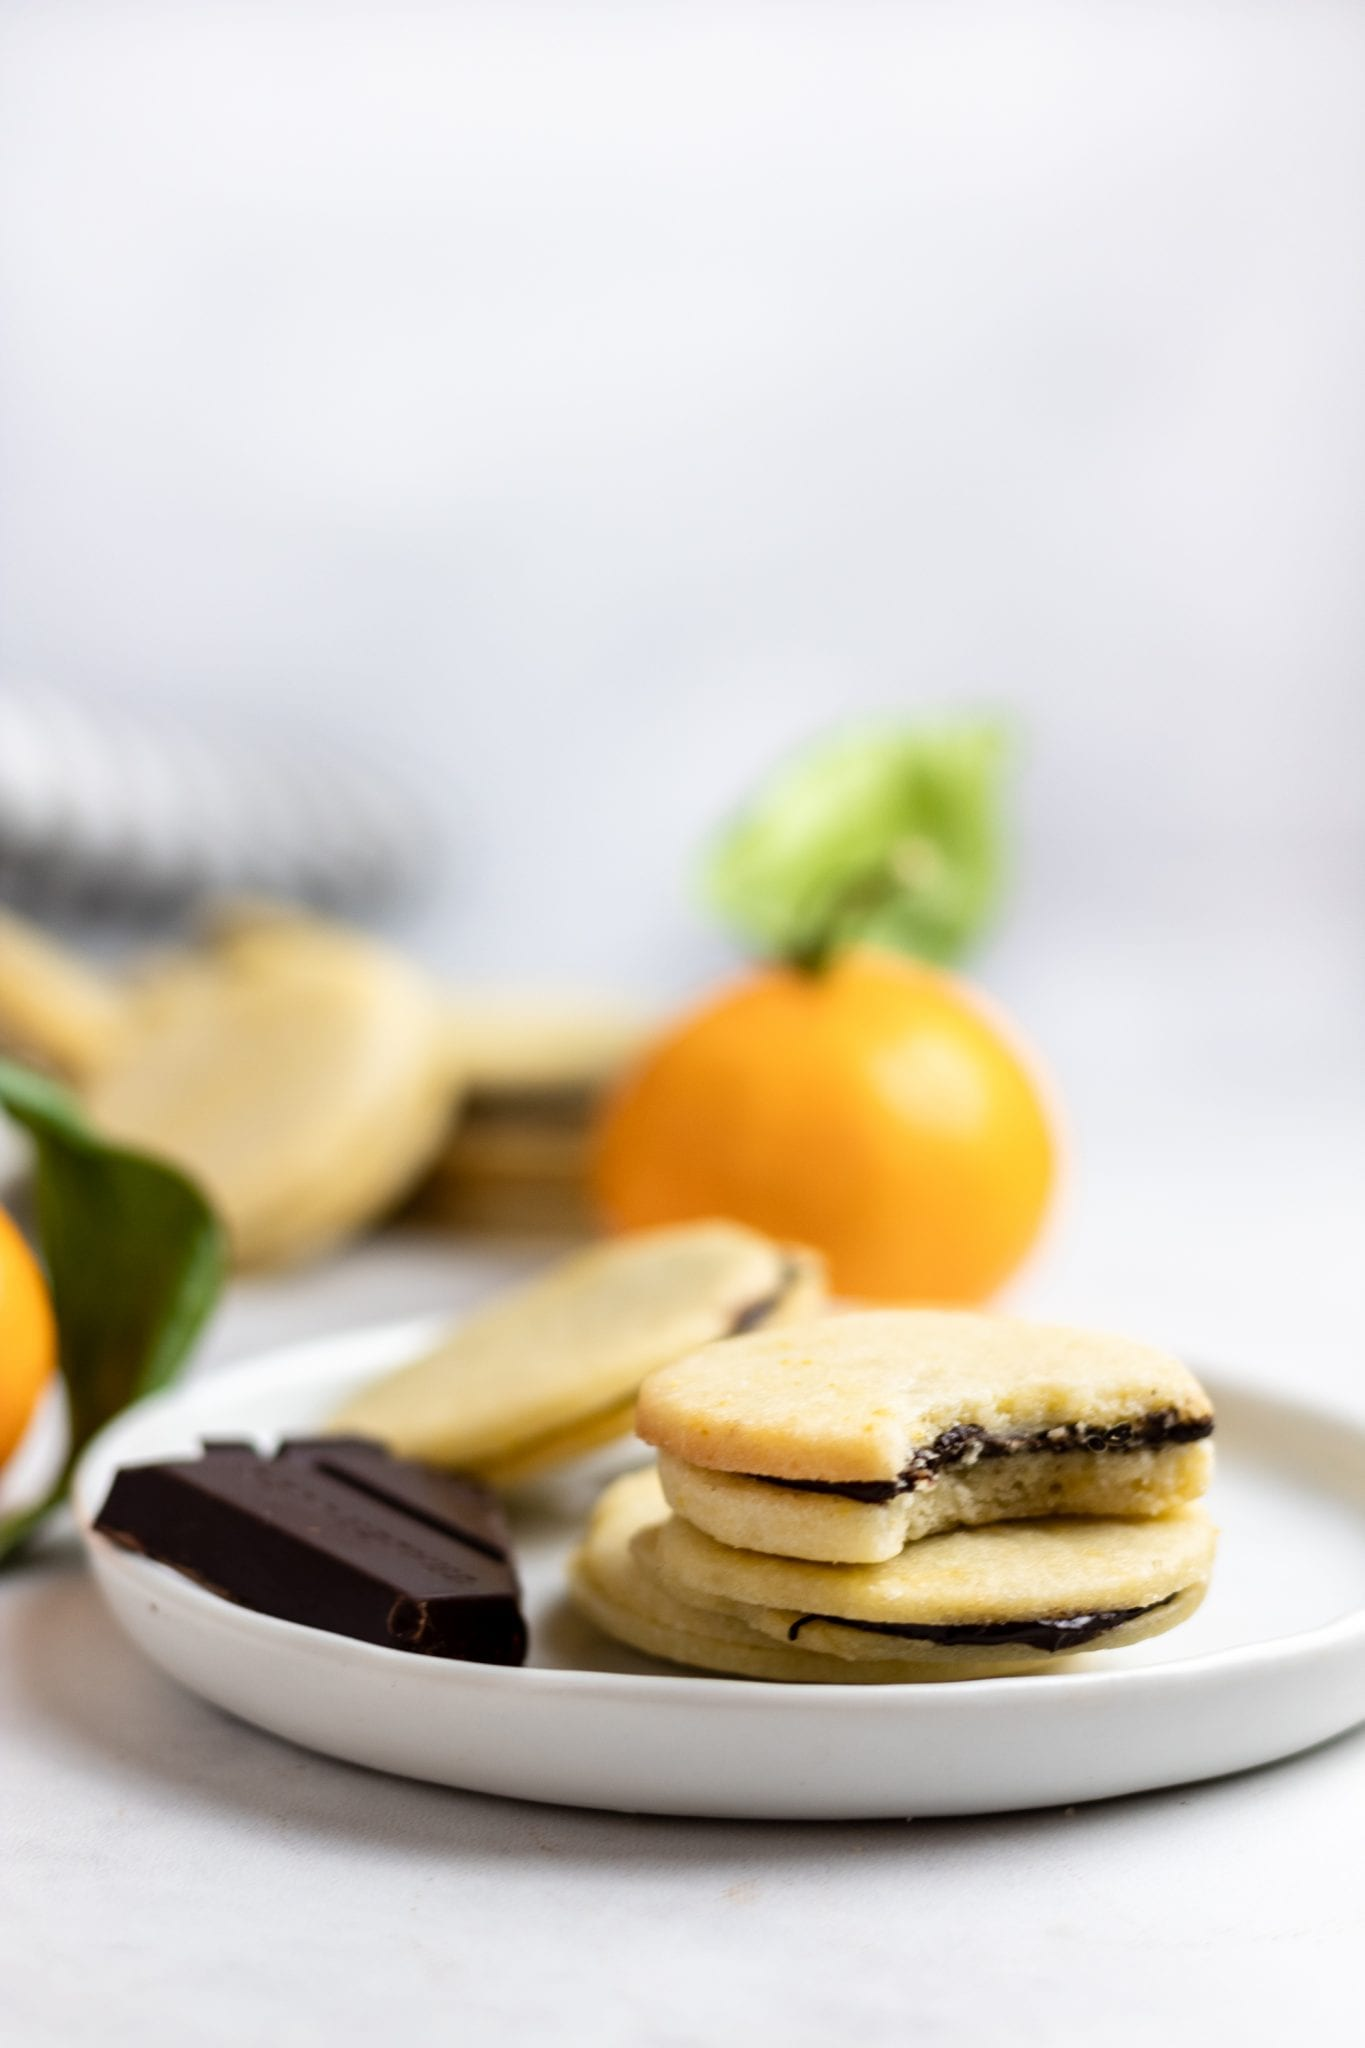 four chocolate orange sandwich cookies on a white plate with a piece of chocolate and small oranges in the background